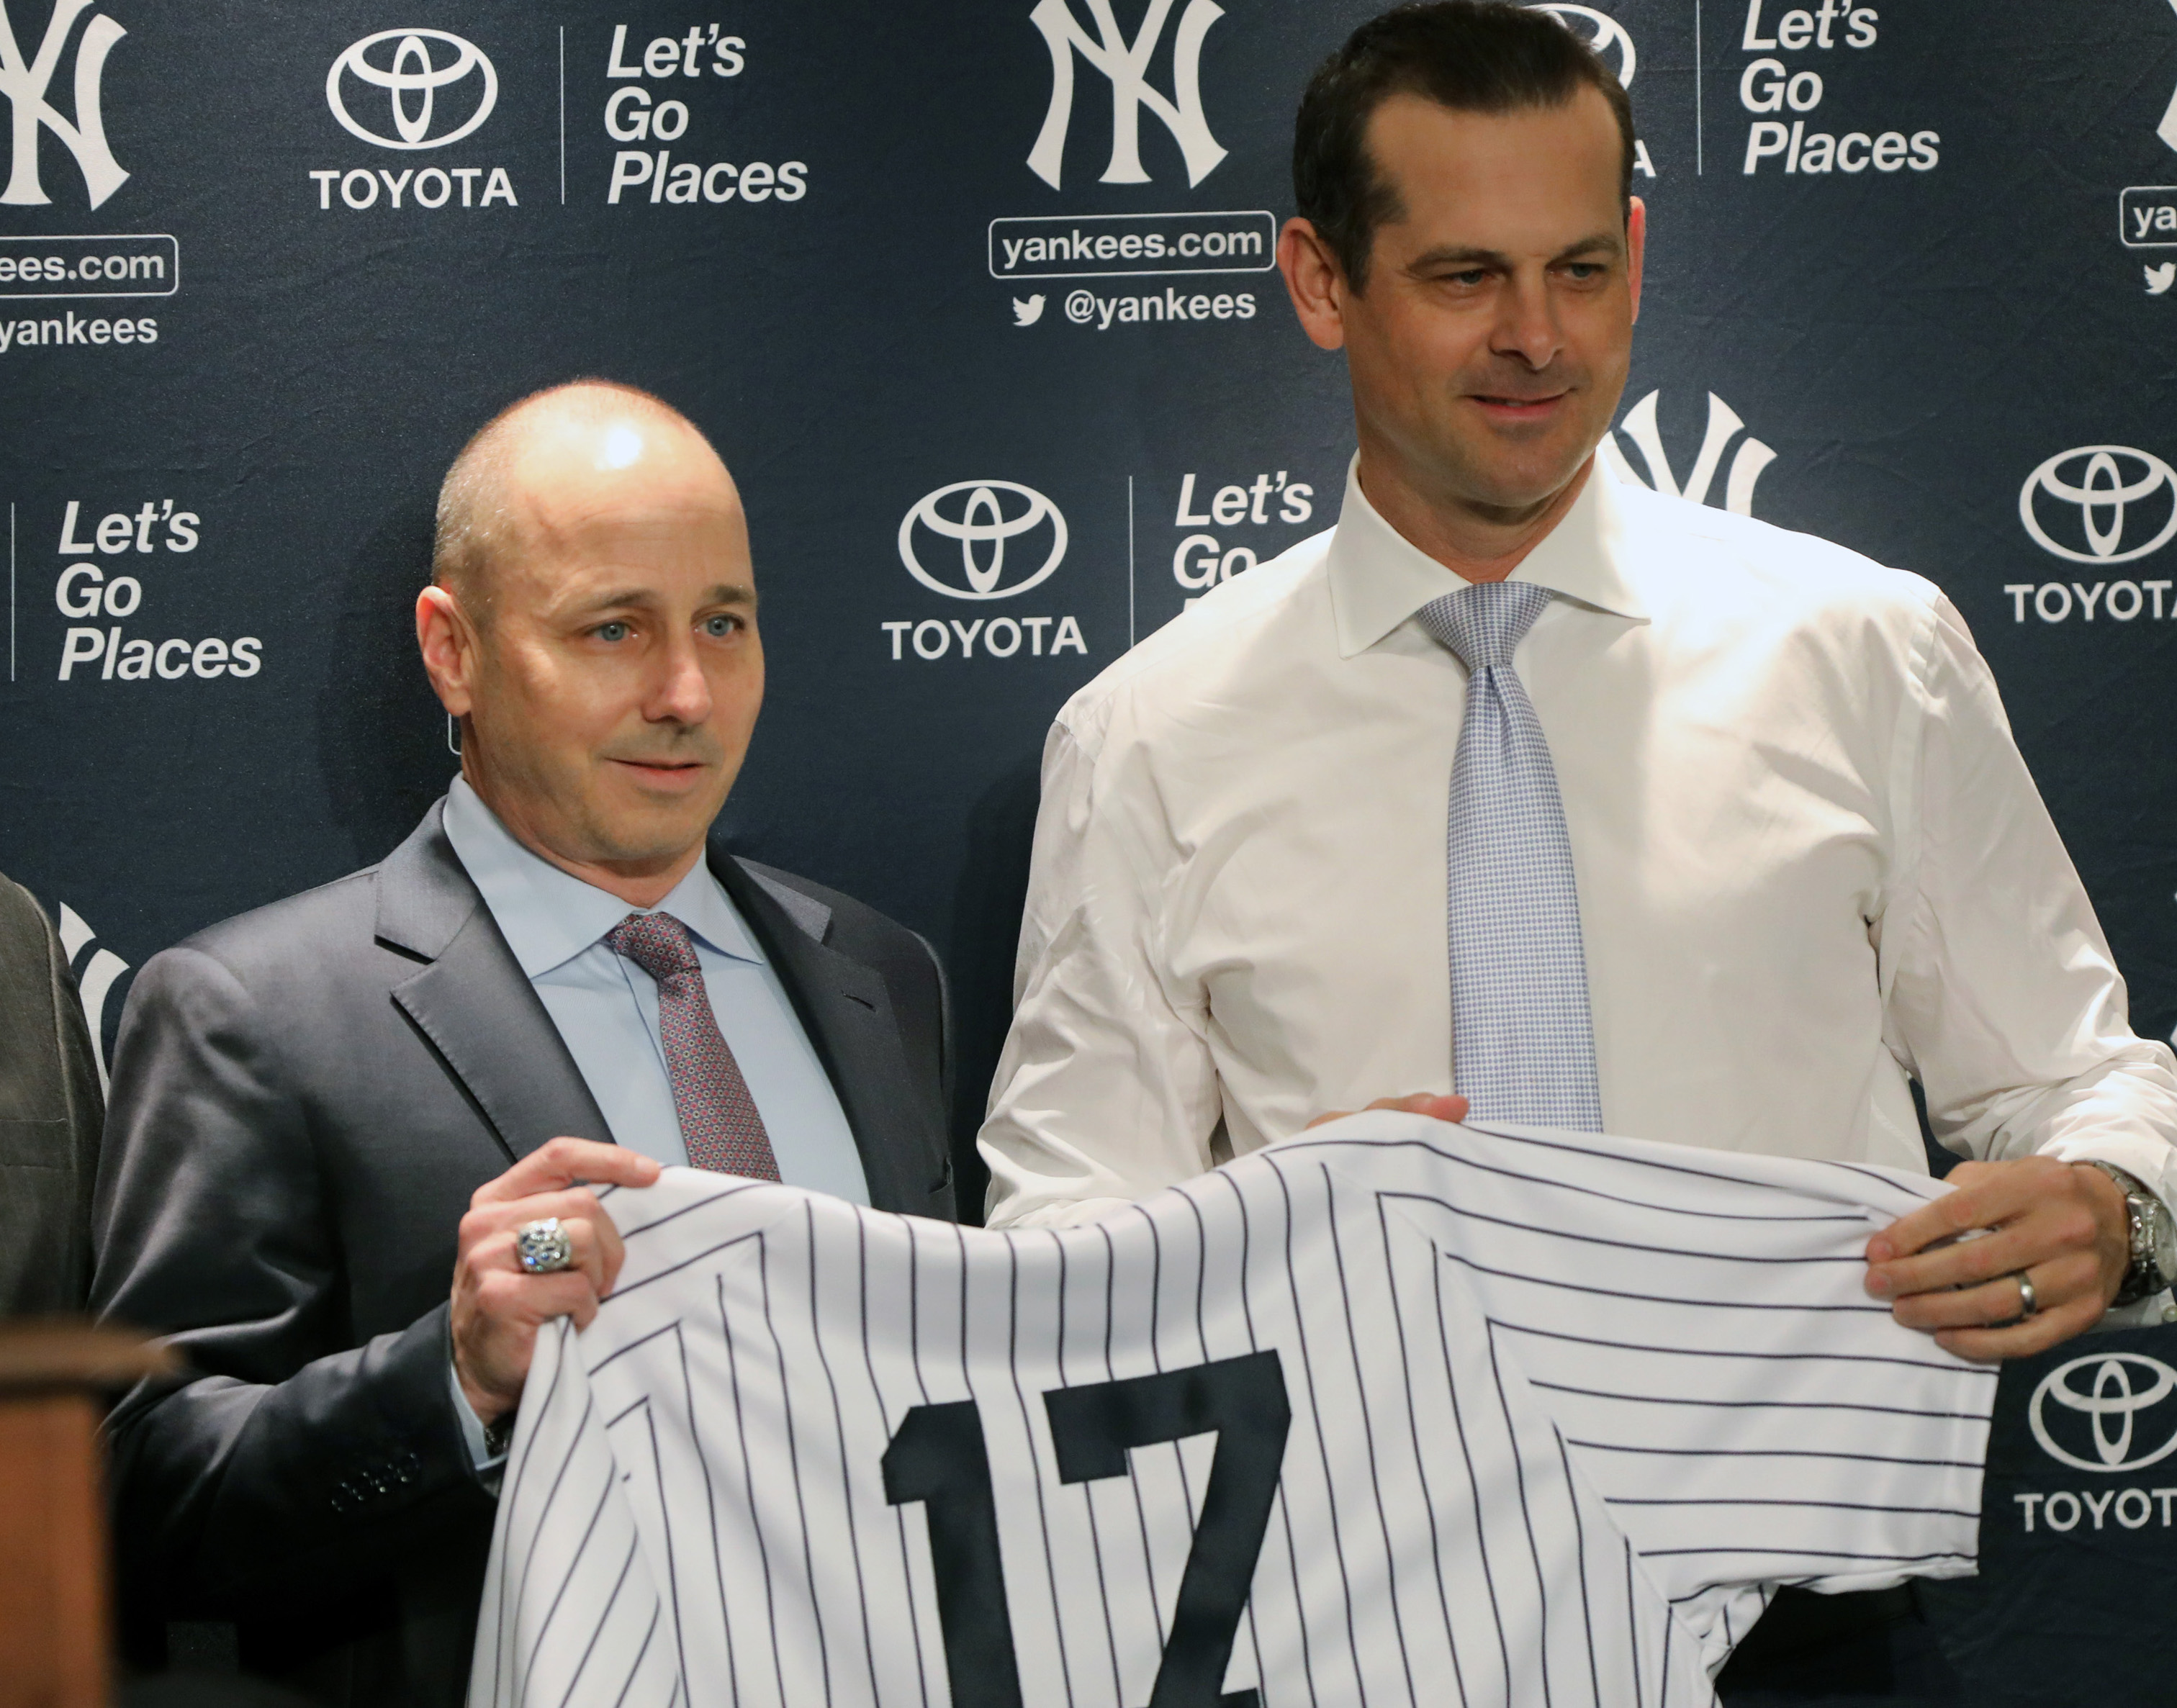 Is Aaron Boone going to be Brian Cashman's puppet?